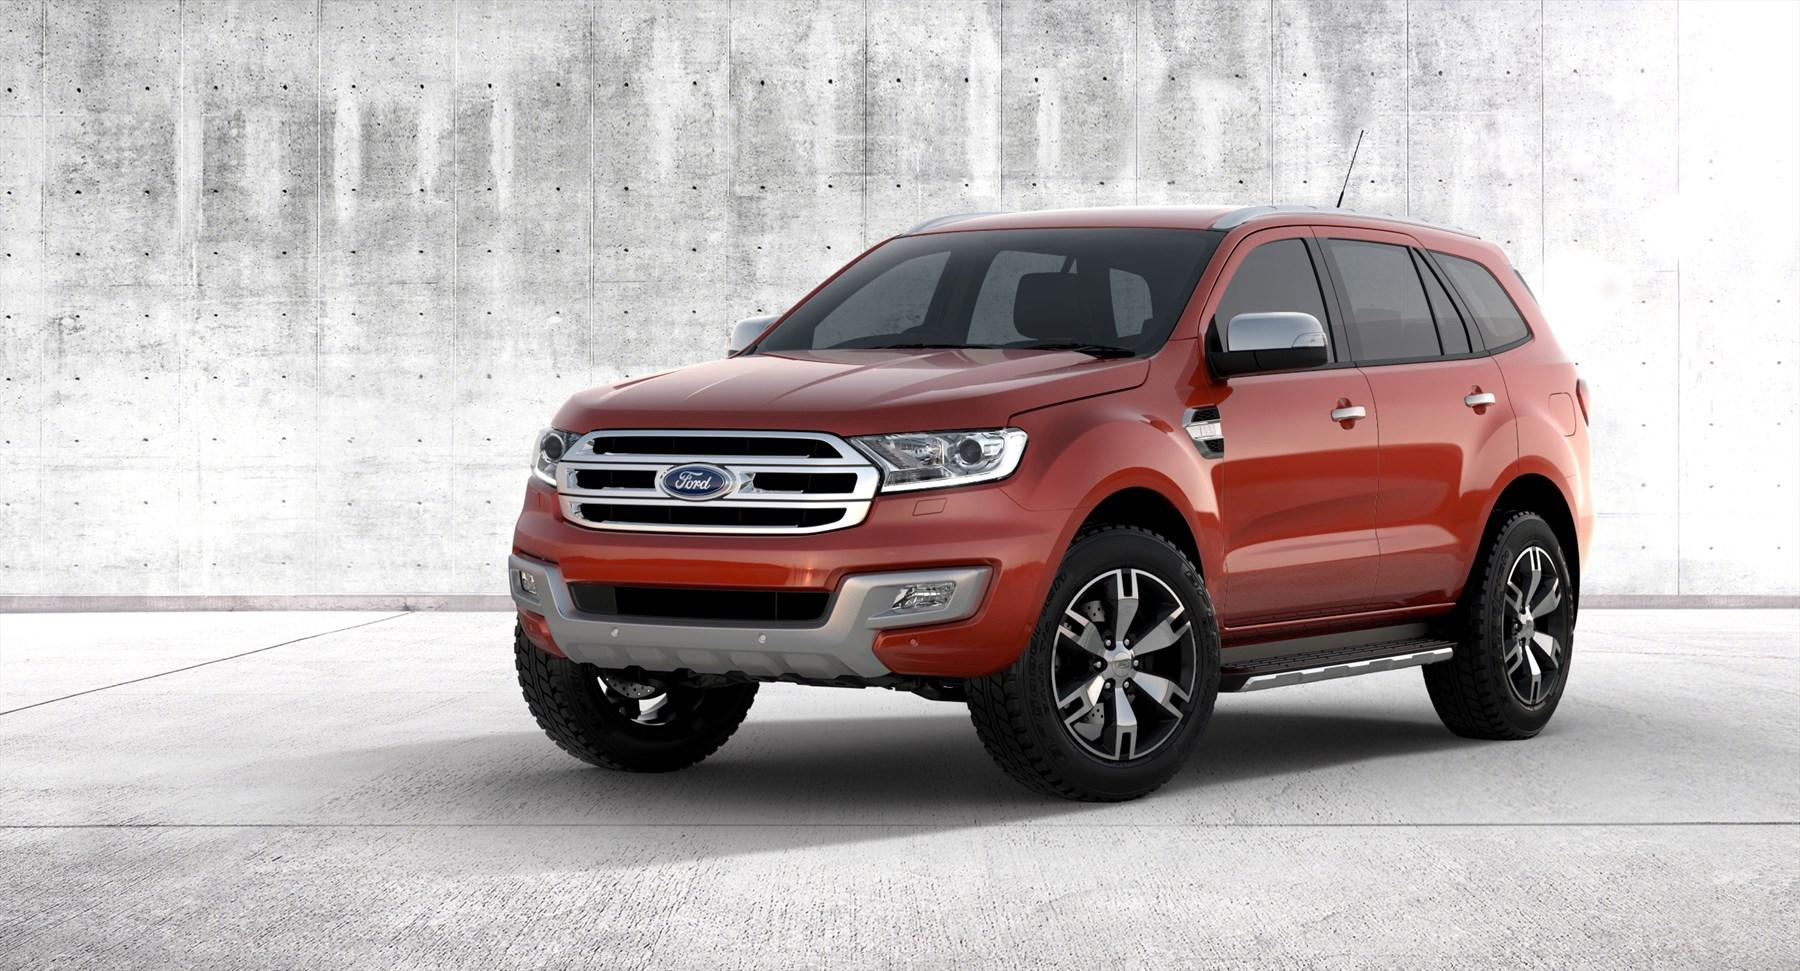 new car releases south africa 2015Ford South Africa on Twitter Breaking News  The New Ford